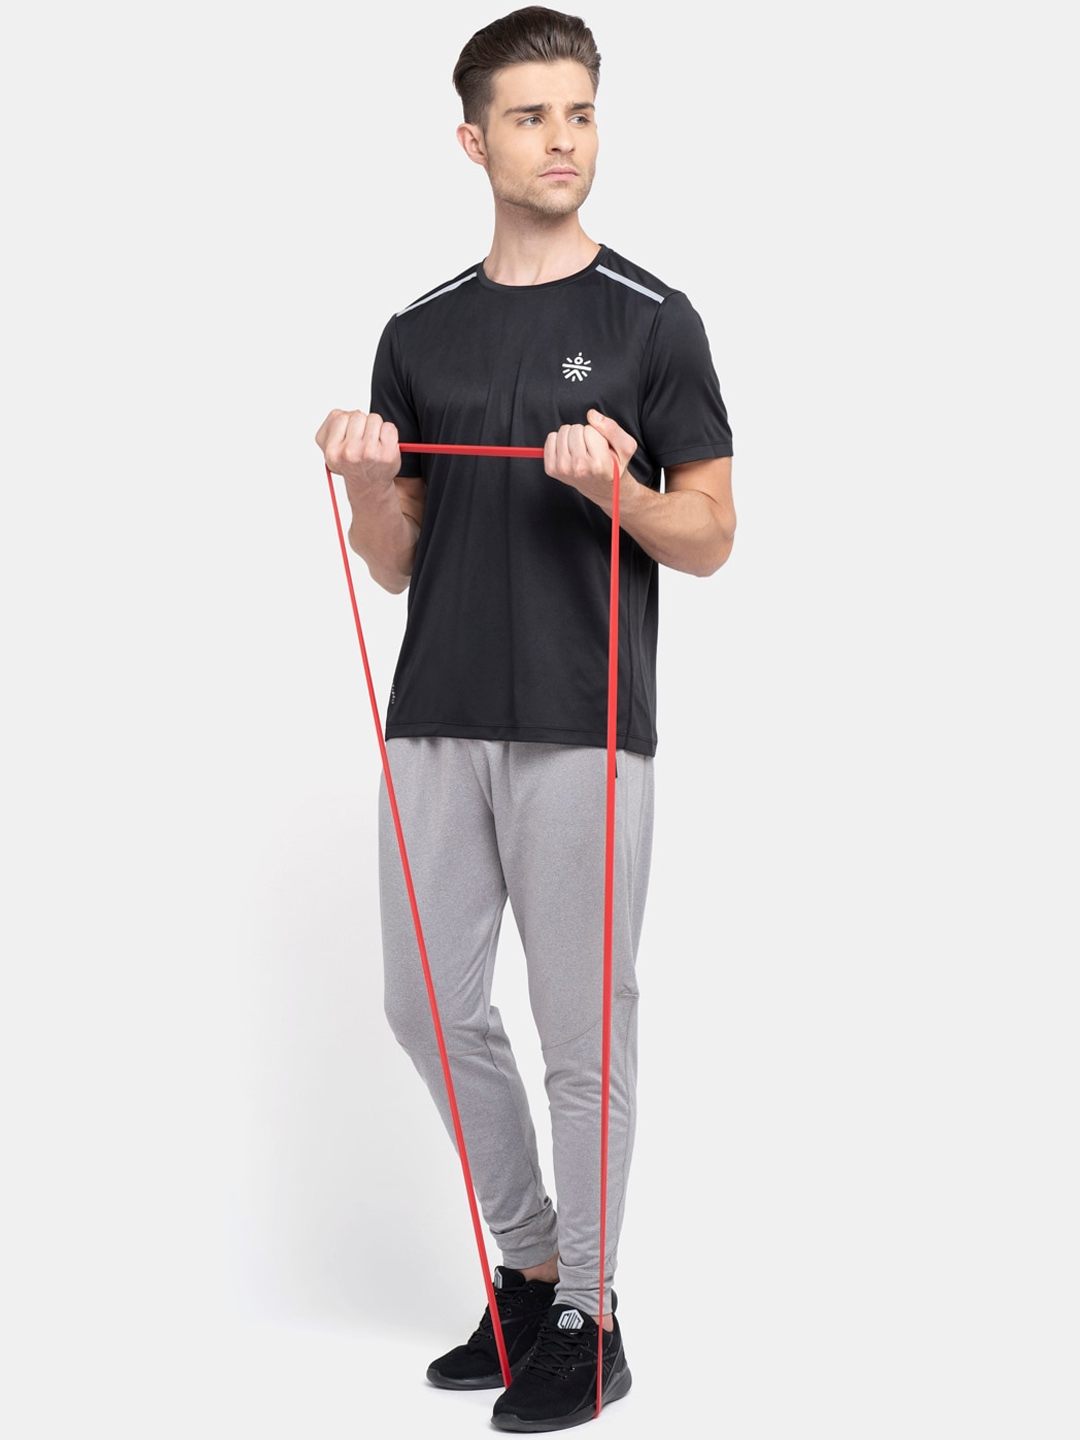 Cultsport Unisex Red Powerloop Resistance Band